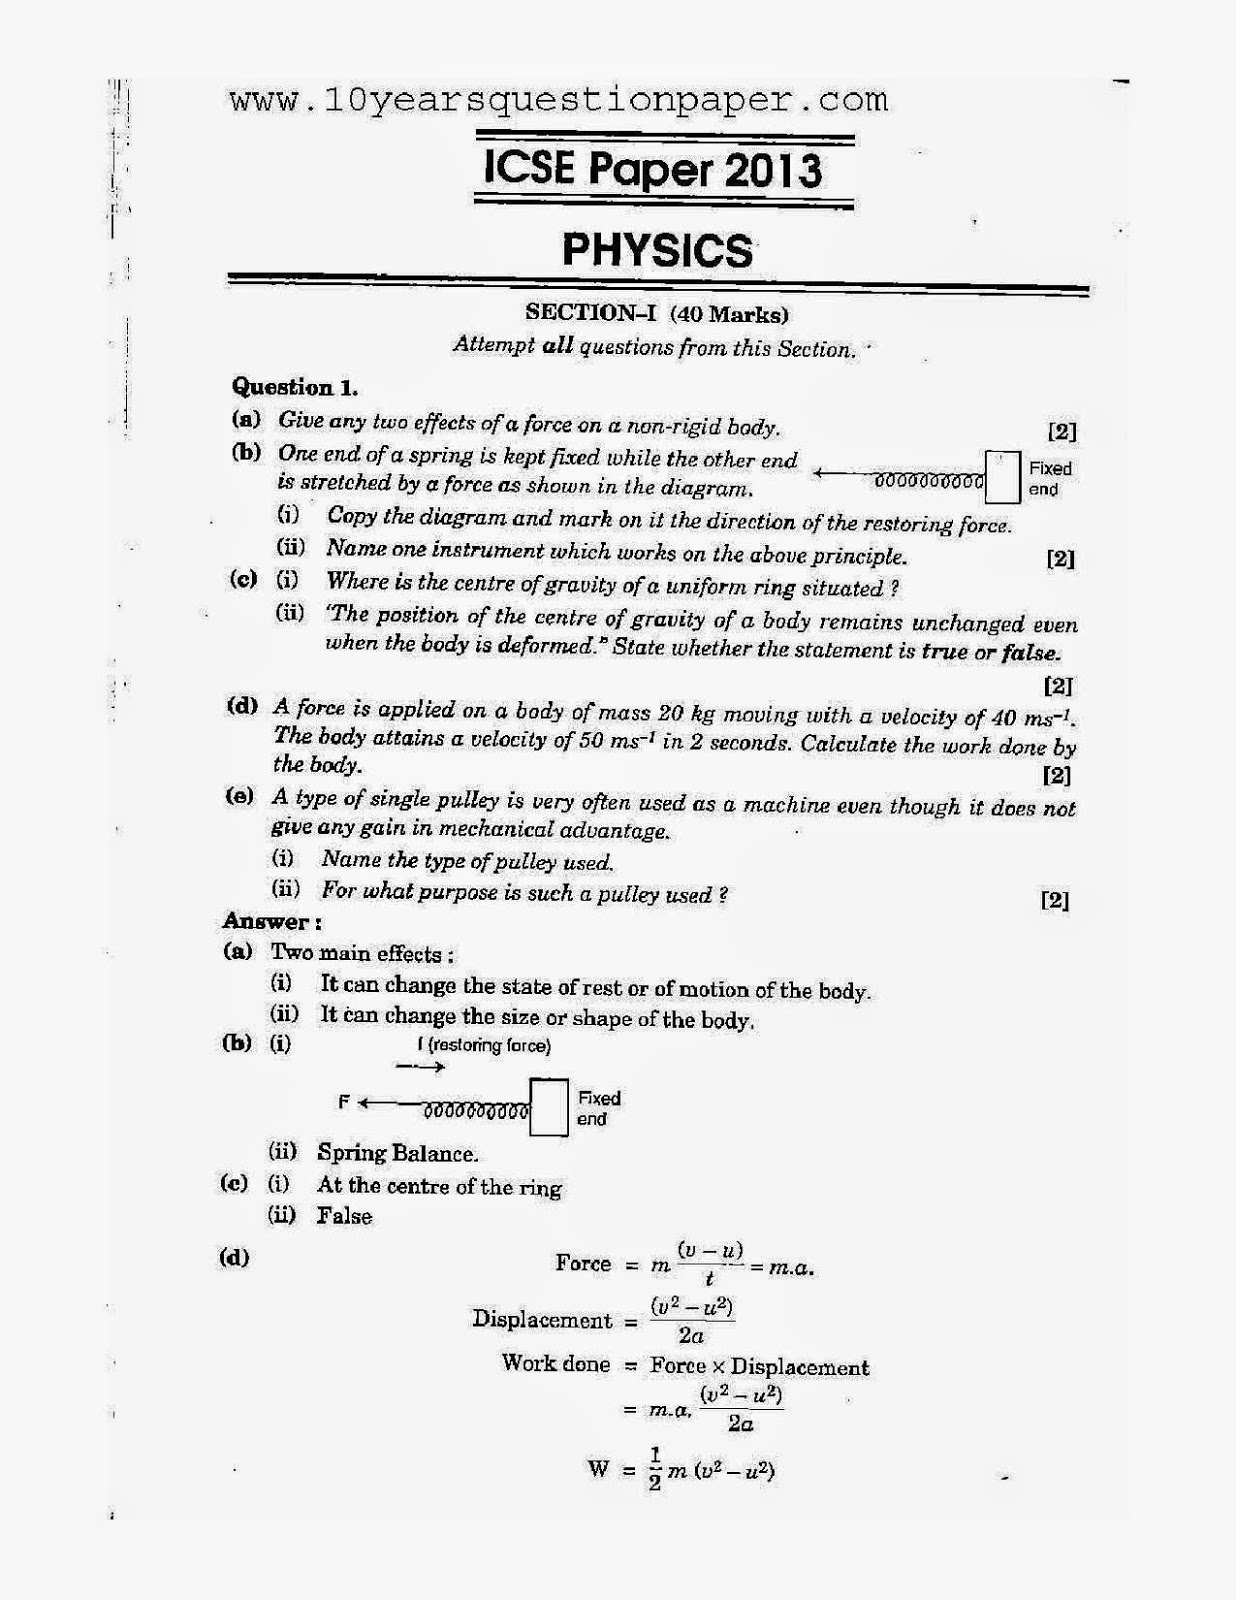 icse physics exam class x solved question paper years icse class 10th physics solved question paper 2013